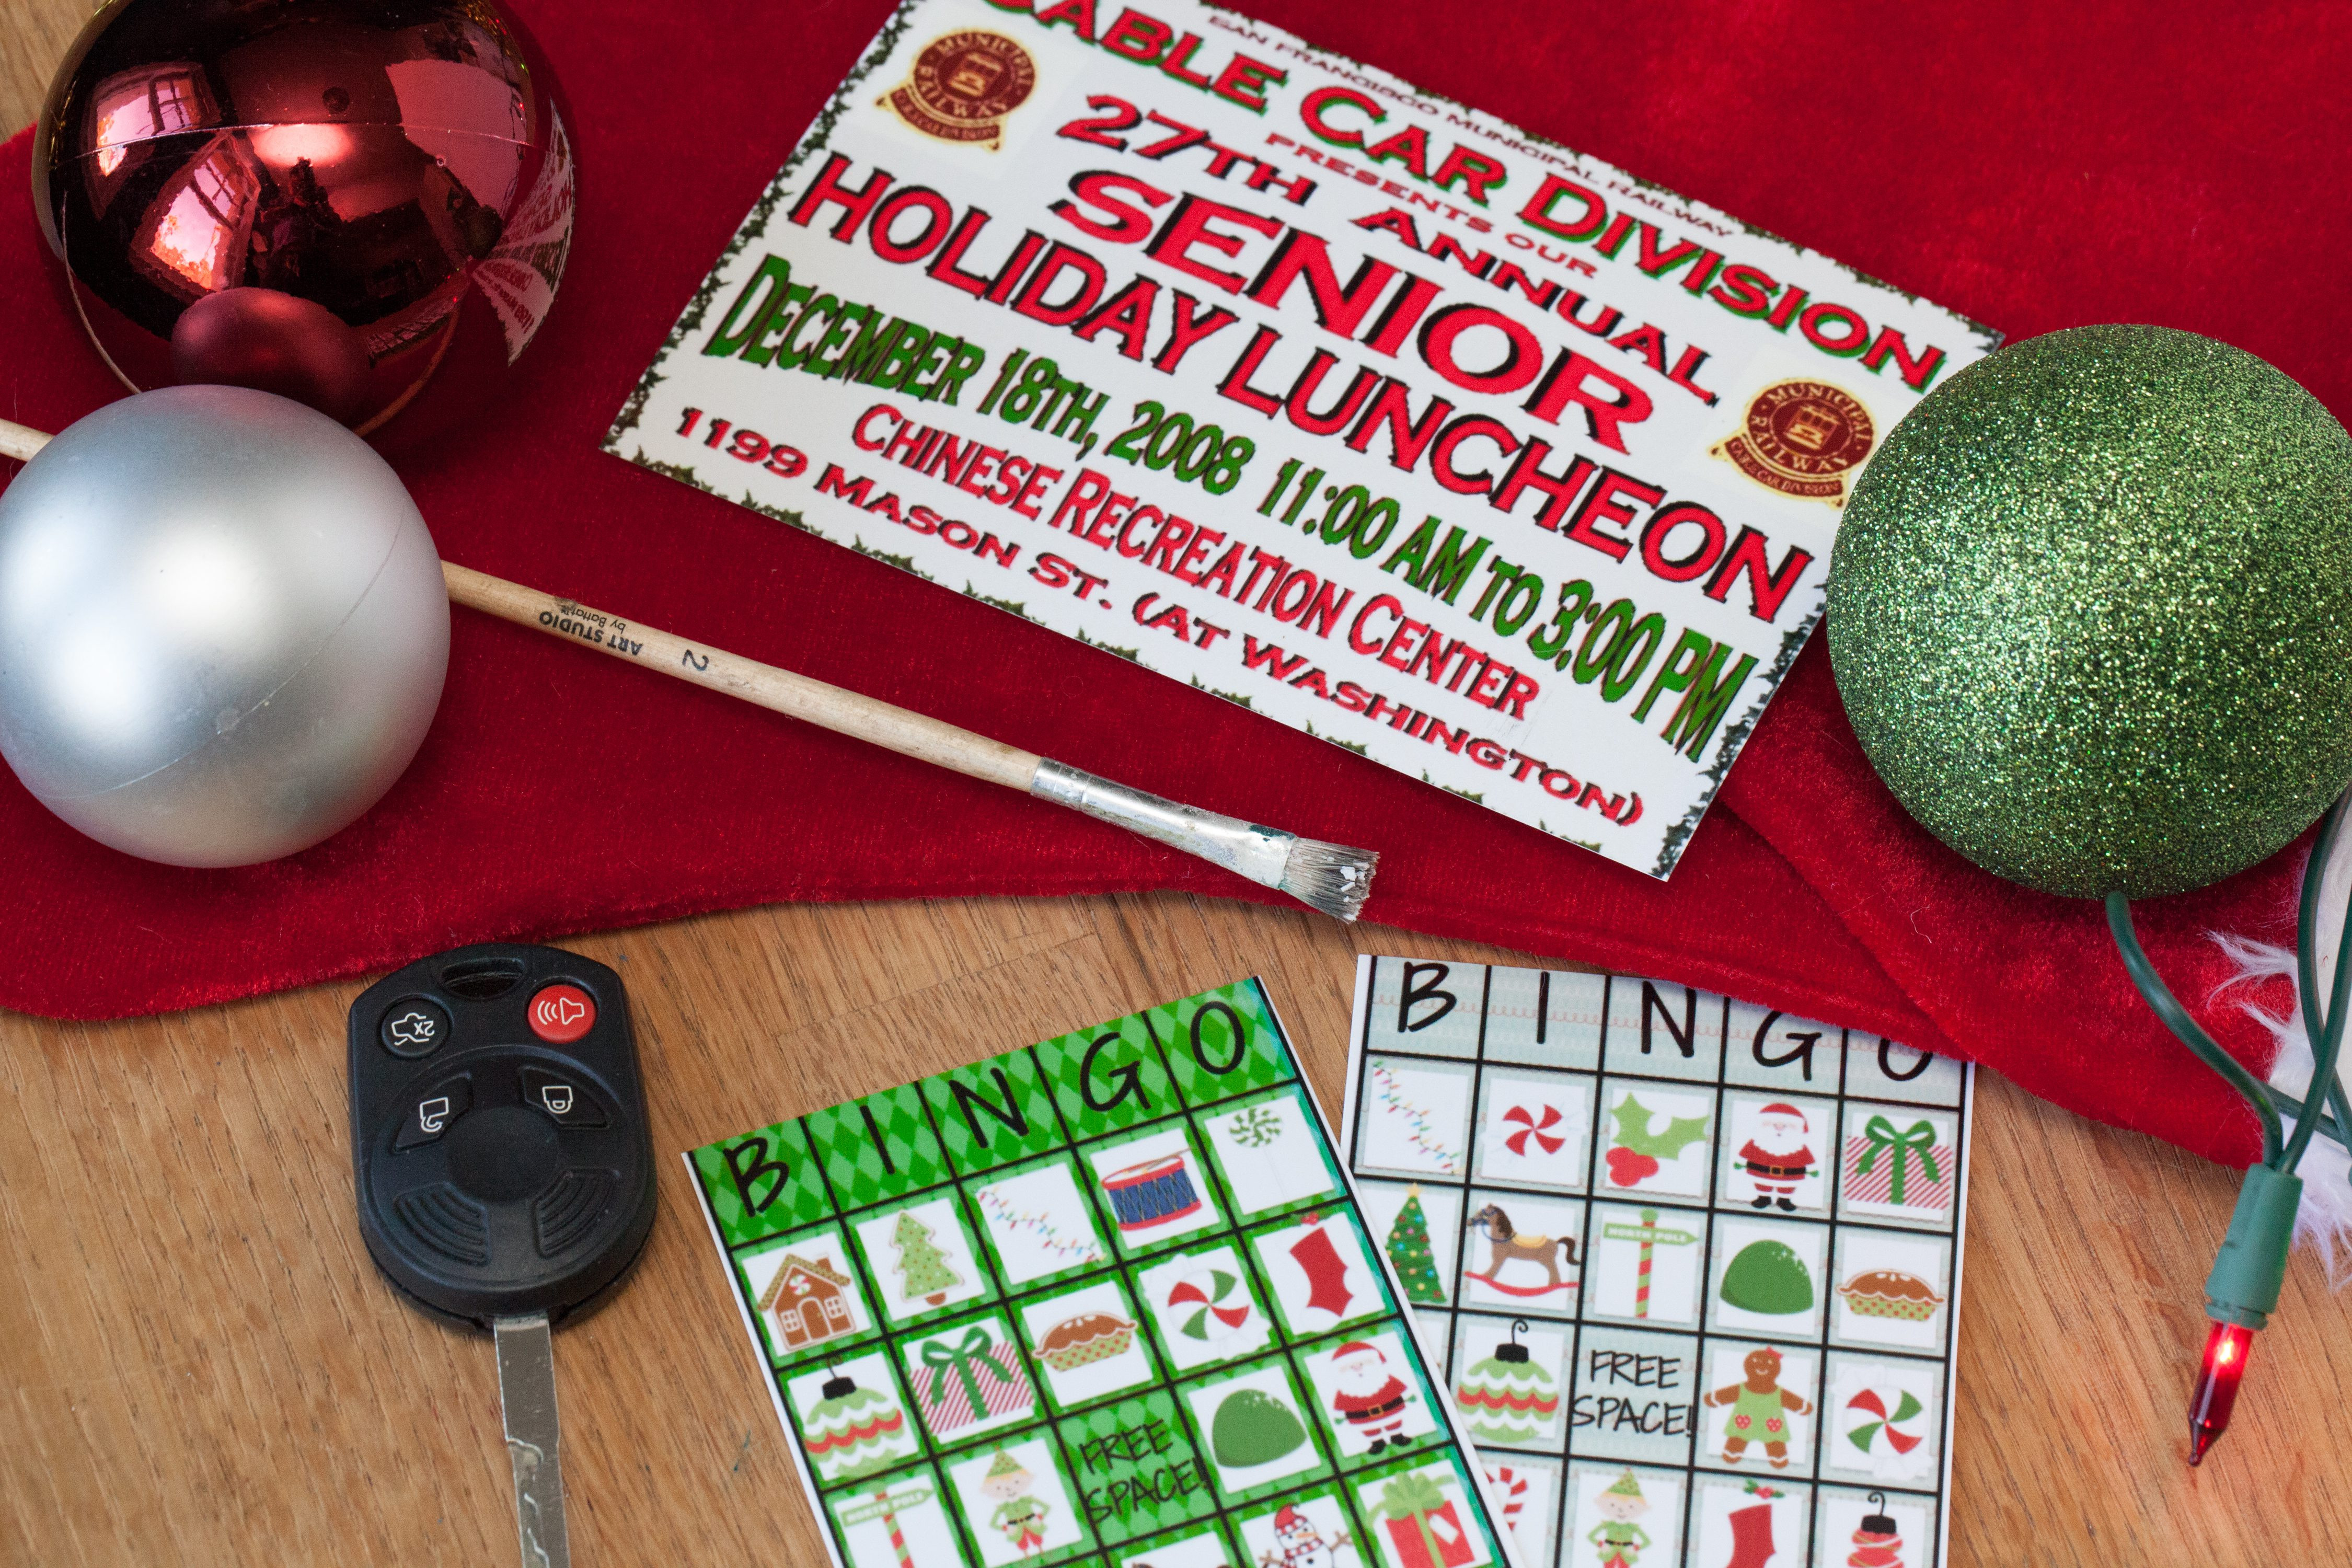 Best ideas about Christmas Crafts For Seniors . Save or Pin Christmas Activities for Senior Citizens with Now.